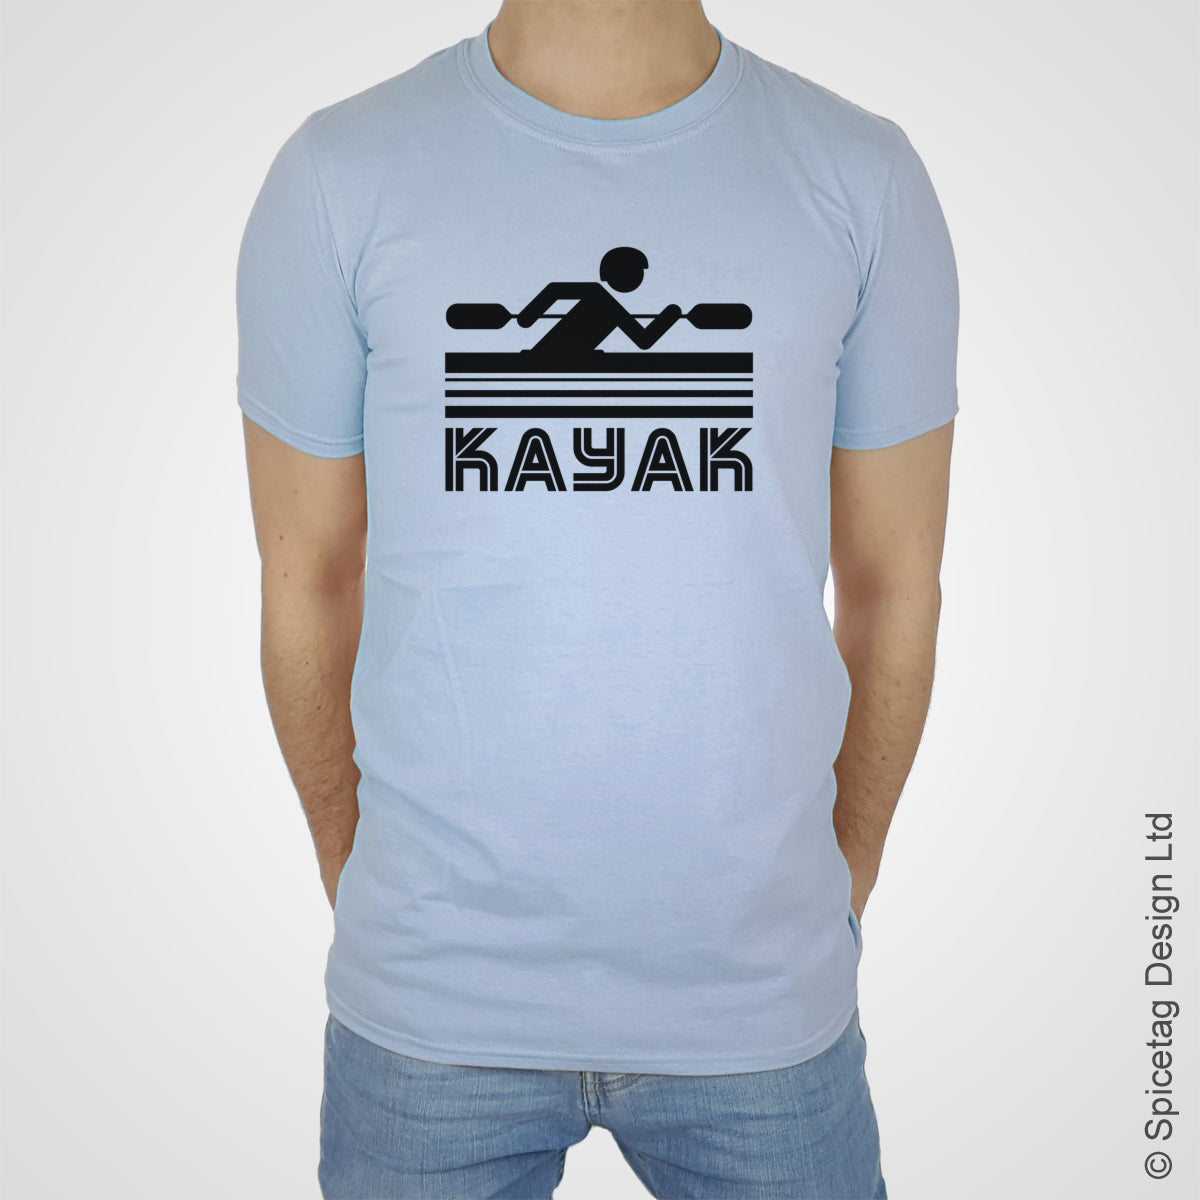 Kayak canoe water T-shirt Tshirt T shirt Tee clothing clothes fashion style sport sports fan olympics athletics track field health fitness world competition champion